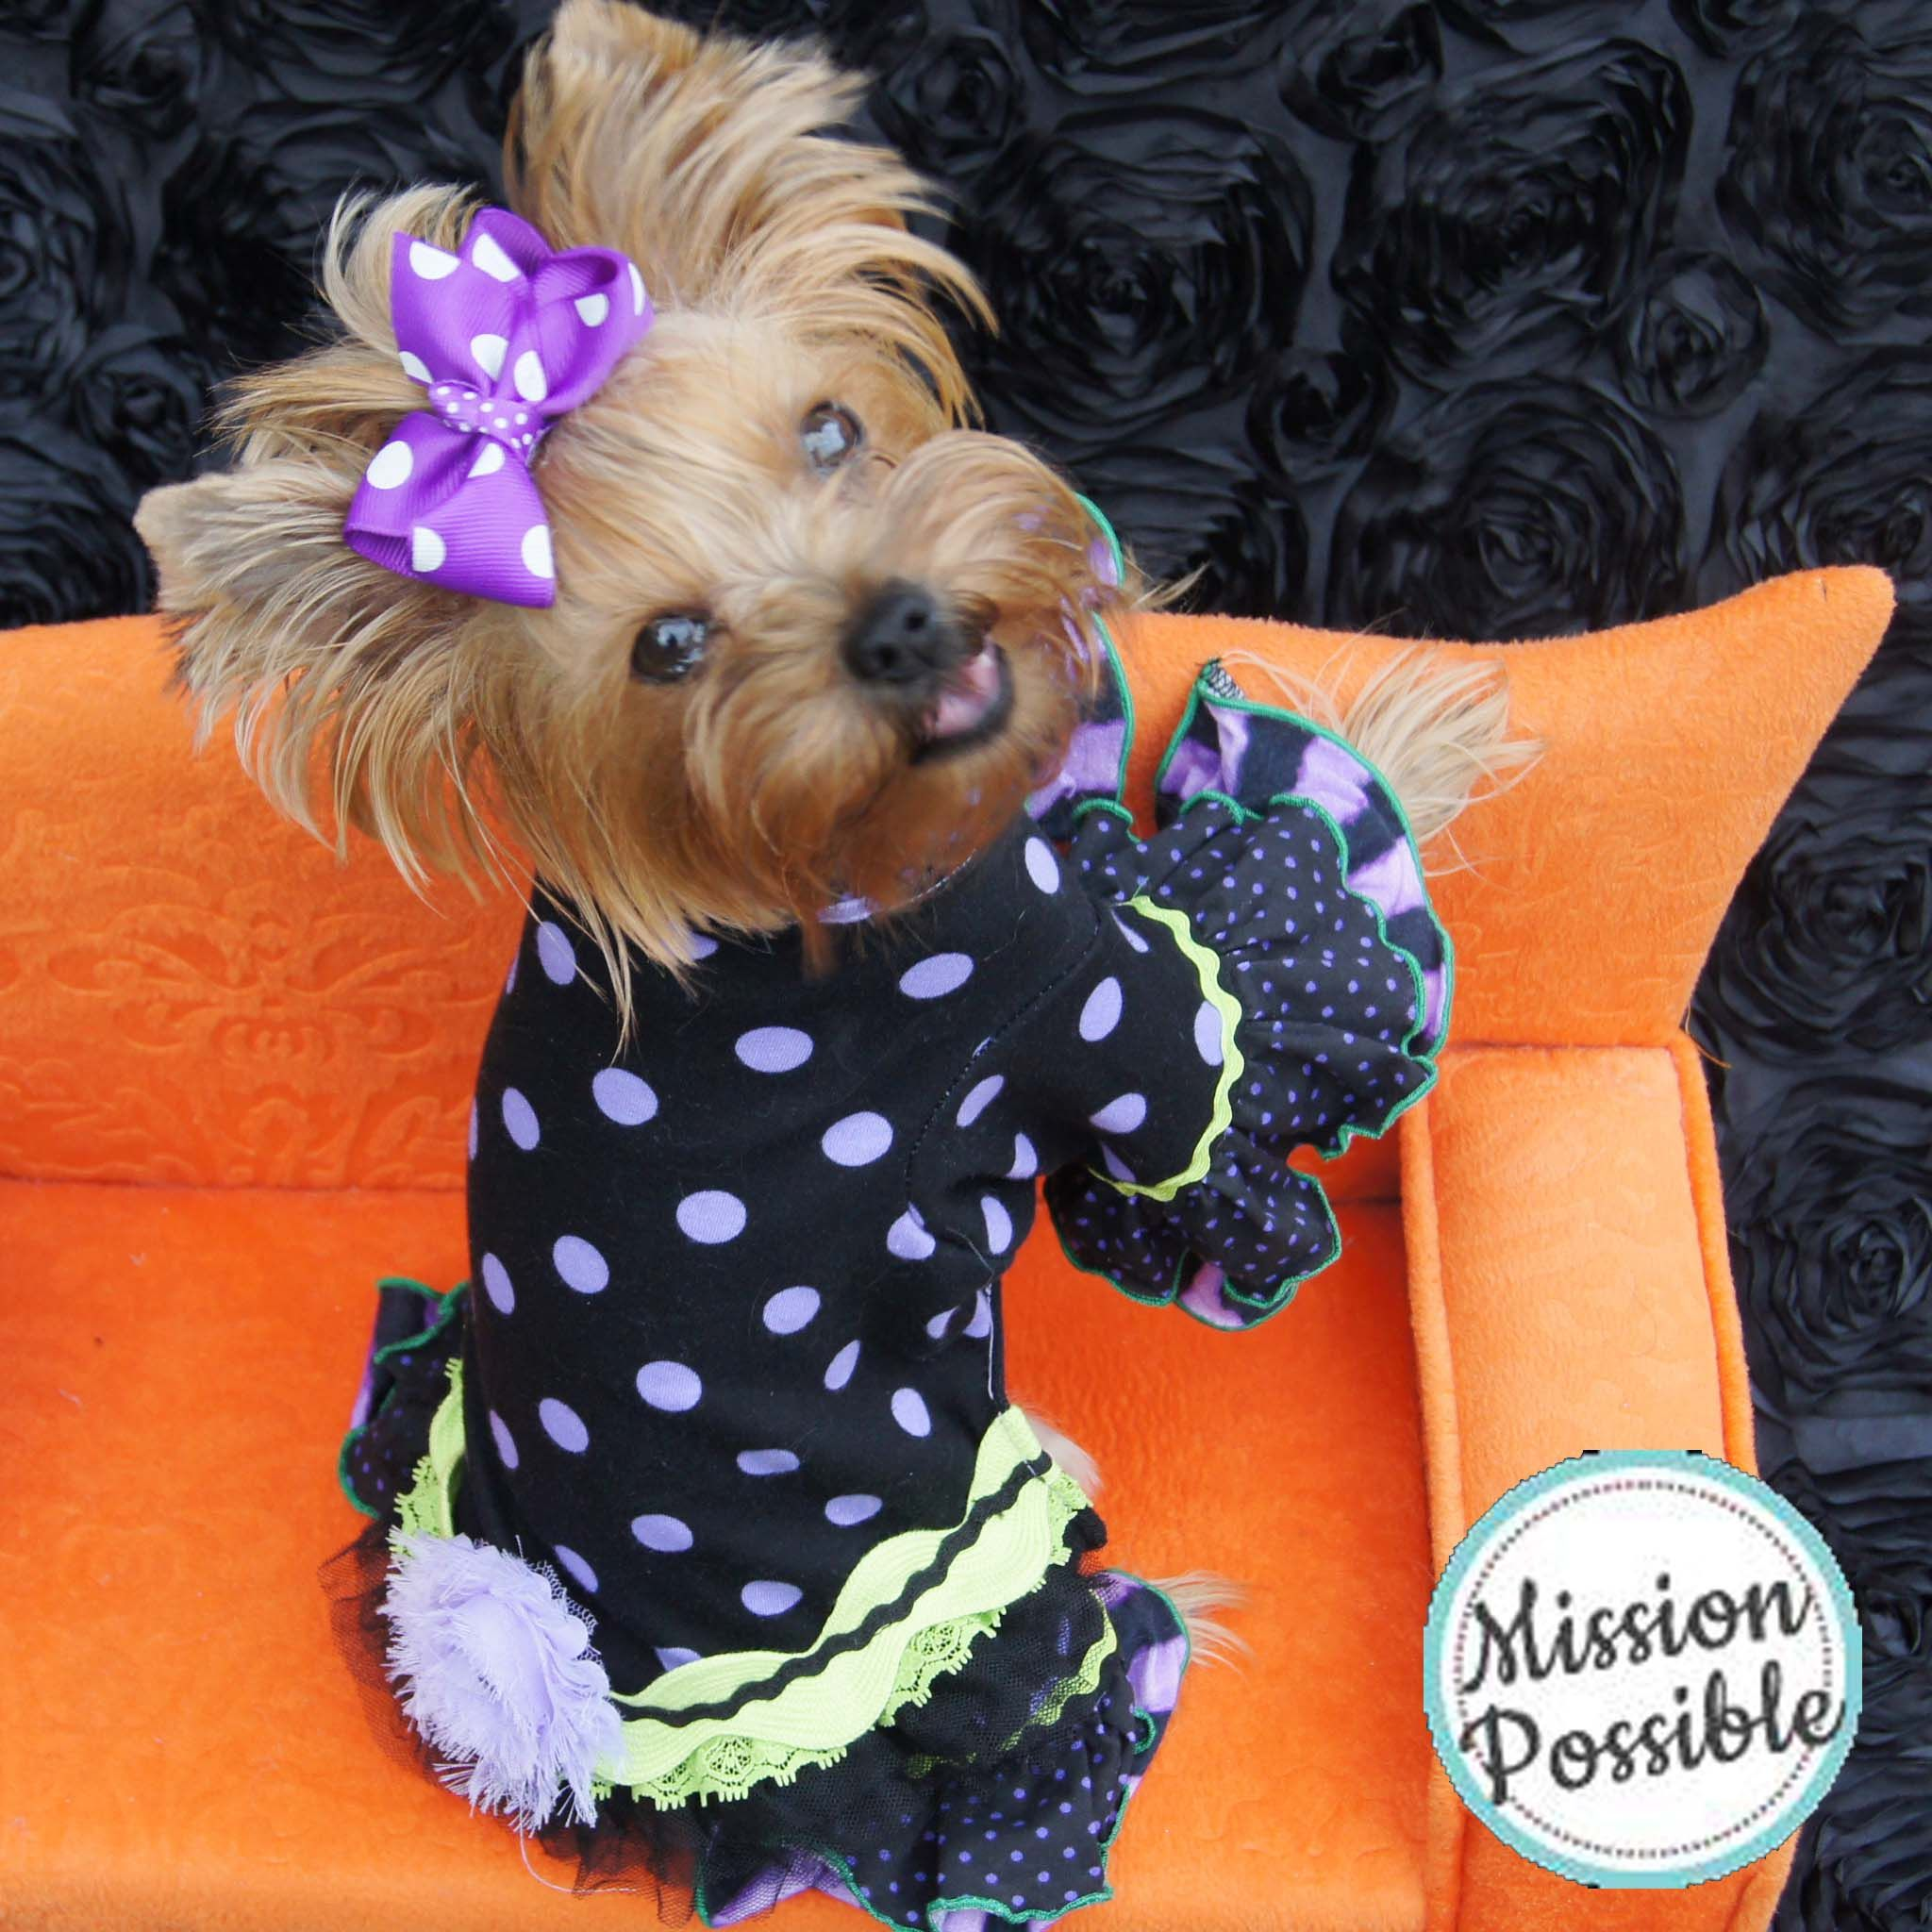 My Yorkie Puppy Pajamas! Dog, small dog Yorkie puppy